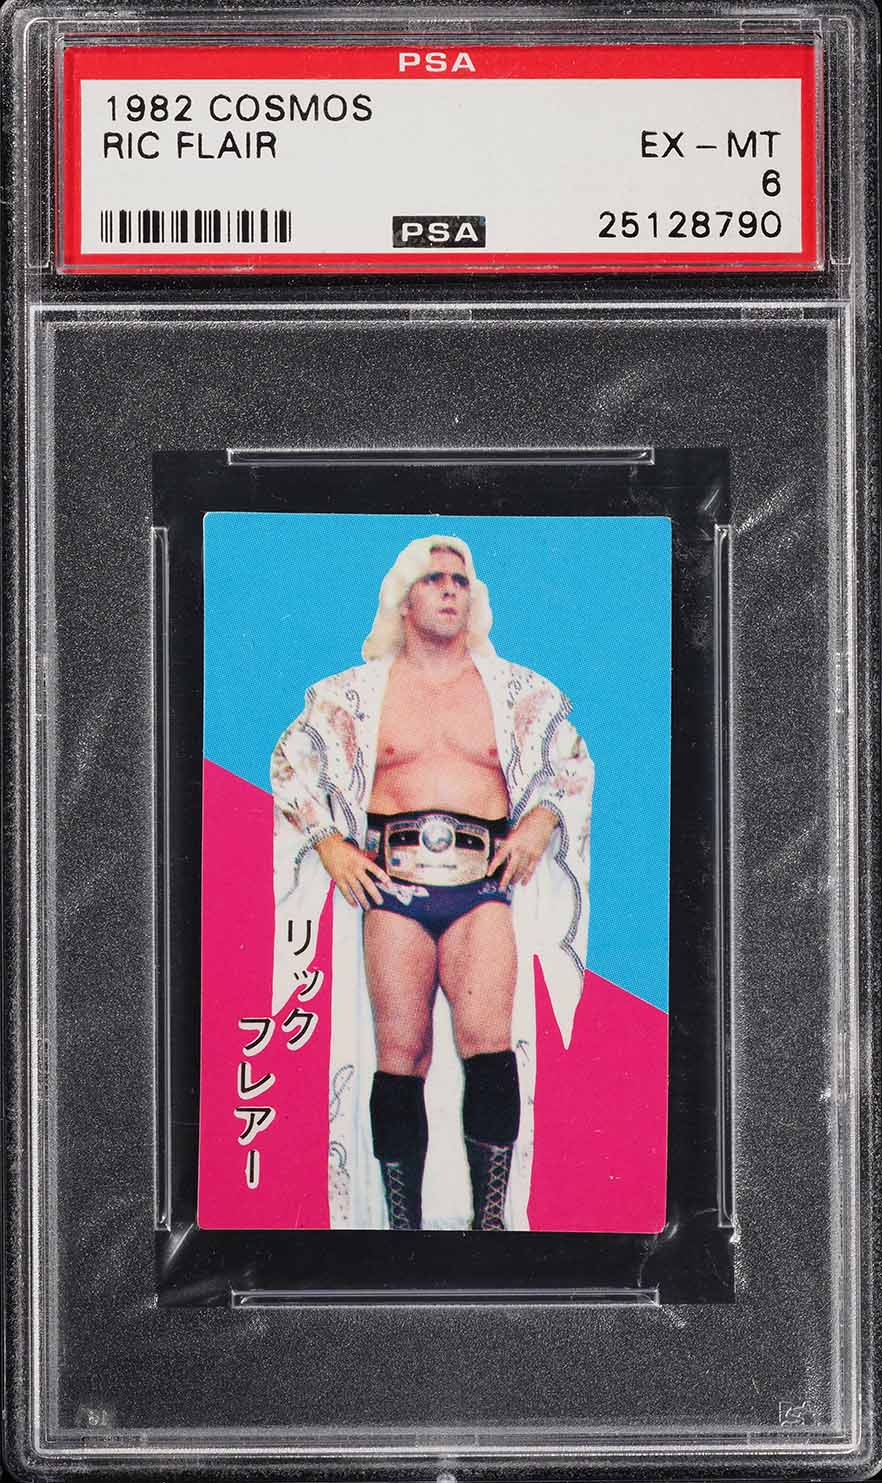 1982 Cosmos Wrestling Ric Flair PSA 6 EXMT (PWCC) - Image 1